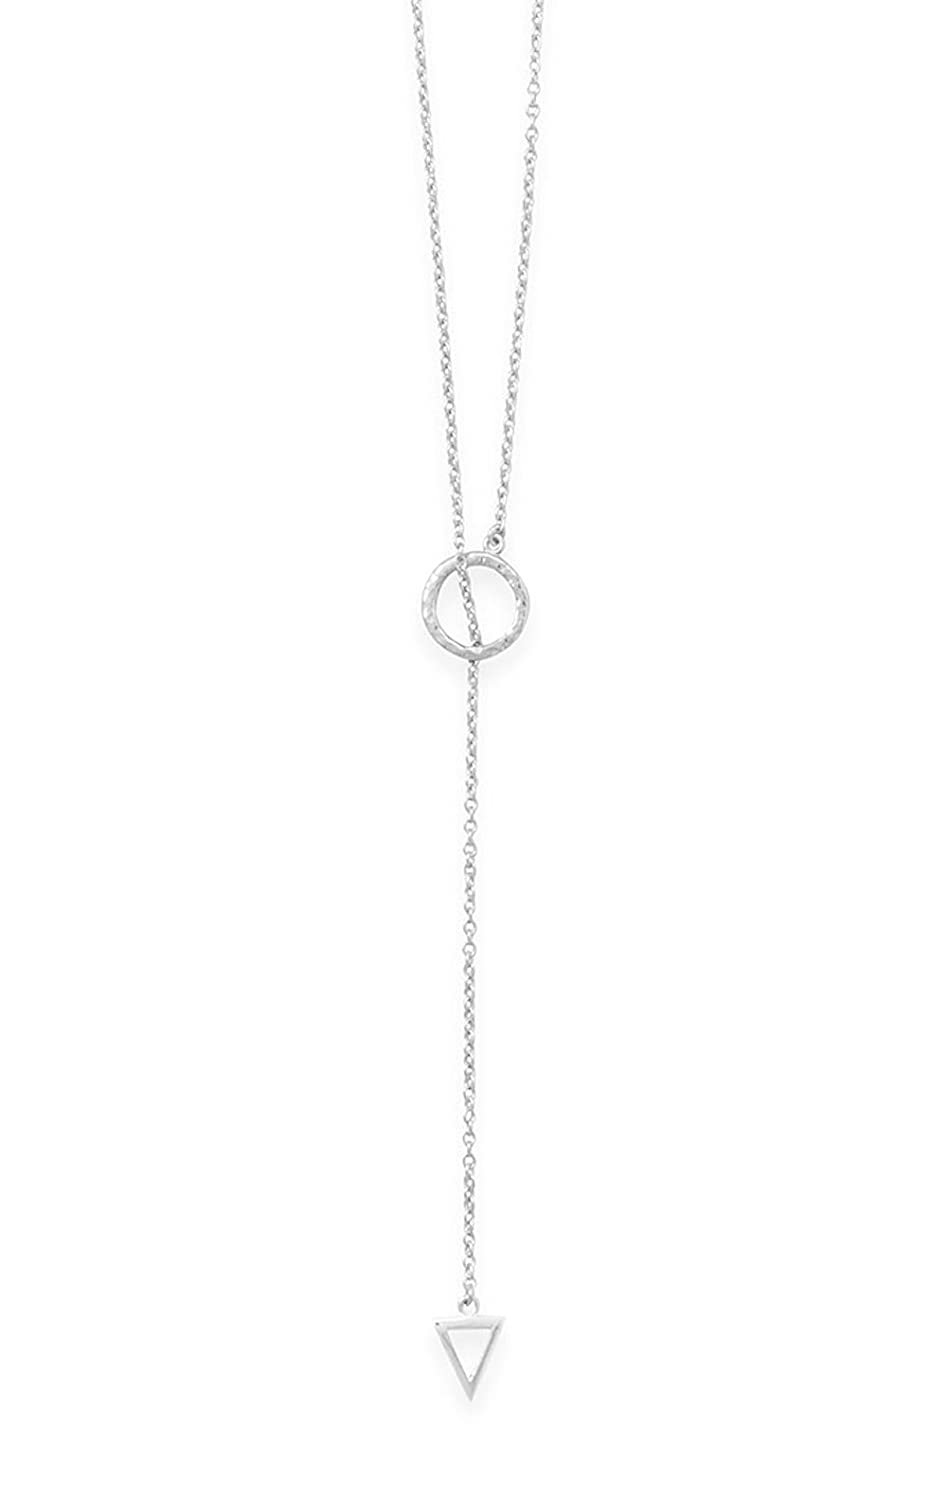 24 inch .925 Sterling Silver Lariat Necklace, 12mm Circle, 8x10mm Triangle Silver Messages 34061-SM